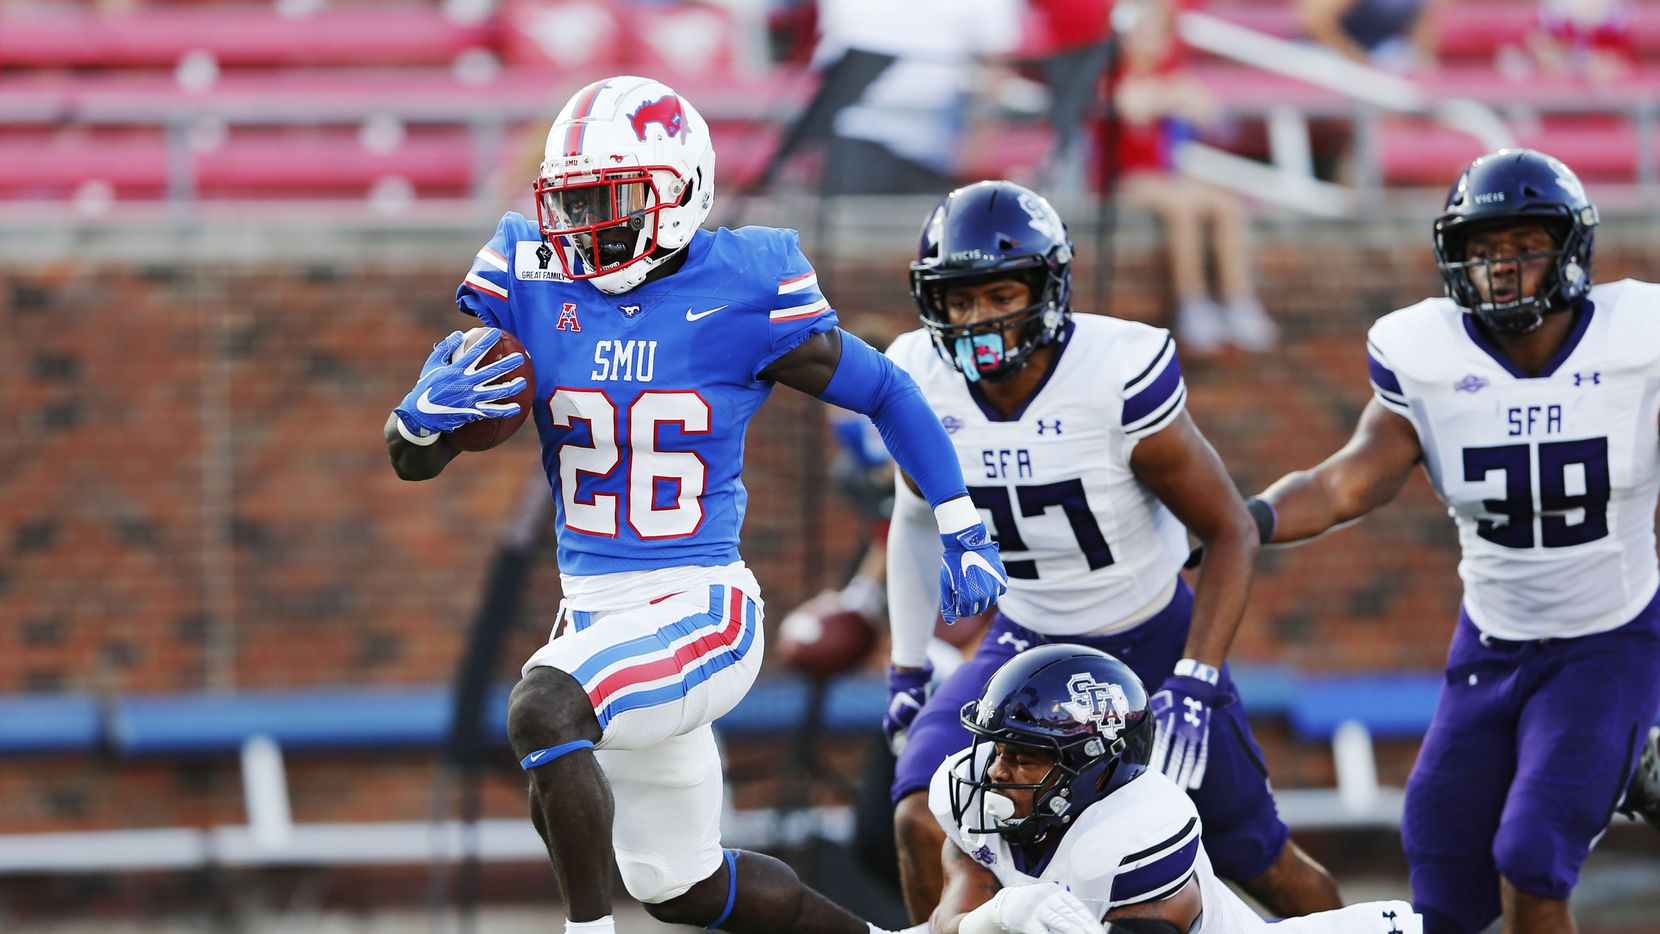 SMU running back Ulysses Bentley IV (26) evades Stephen F. Austin linebacker Brevin Randle (6) for a touchdown during the first half of a game at Ford Stadium in Dallas on Saturday, Sept. 26, 2020.